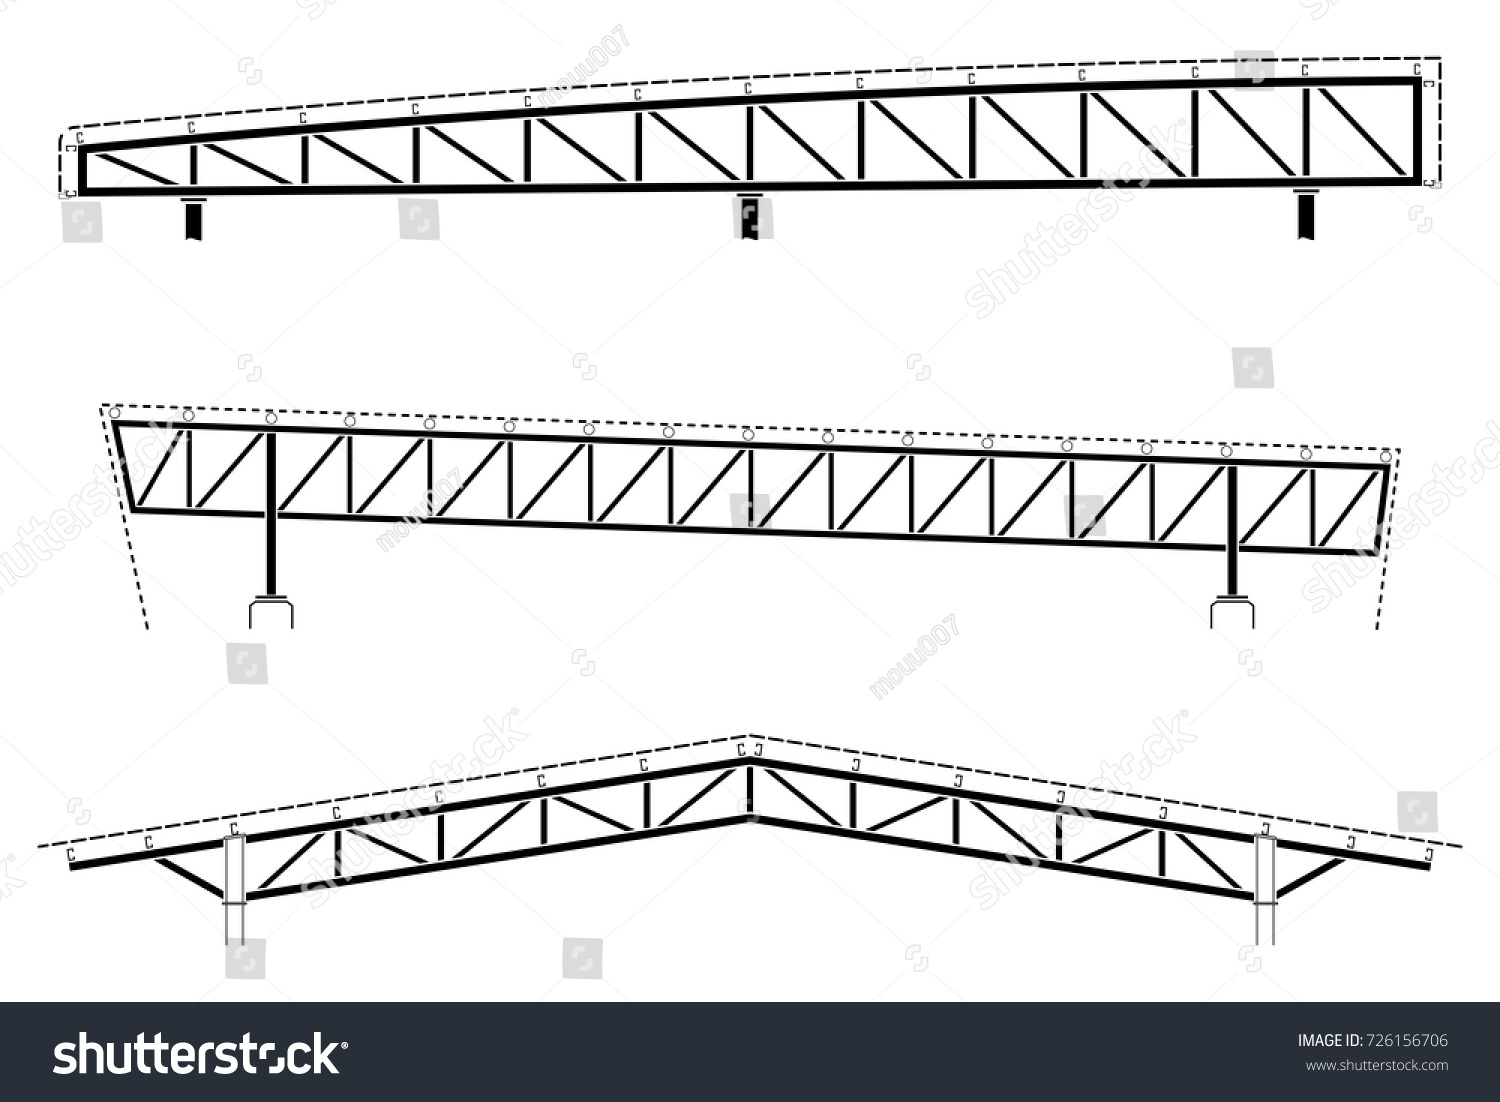 Roofing building steel frame detail roof stock vector for Roof truss sign